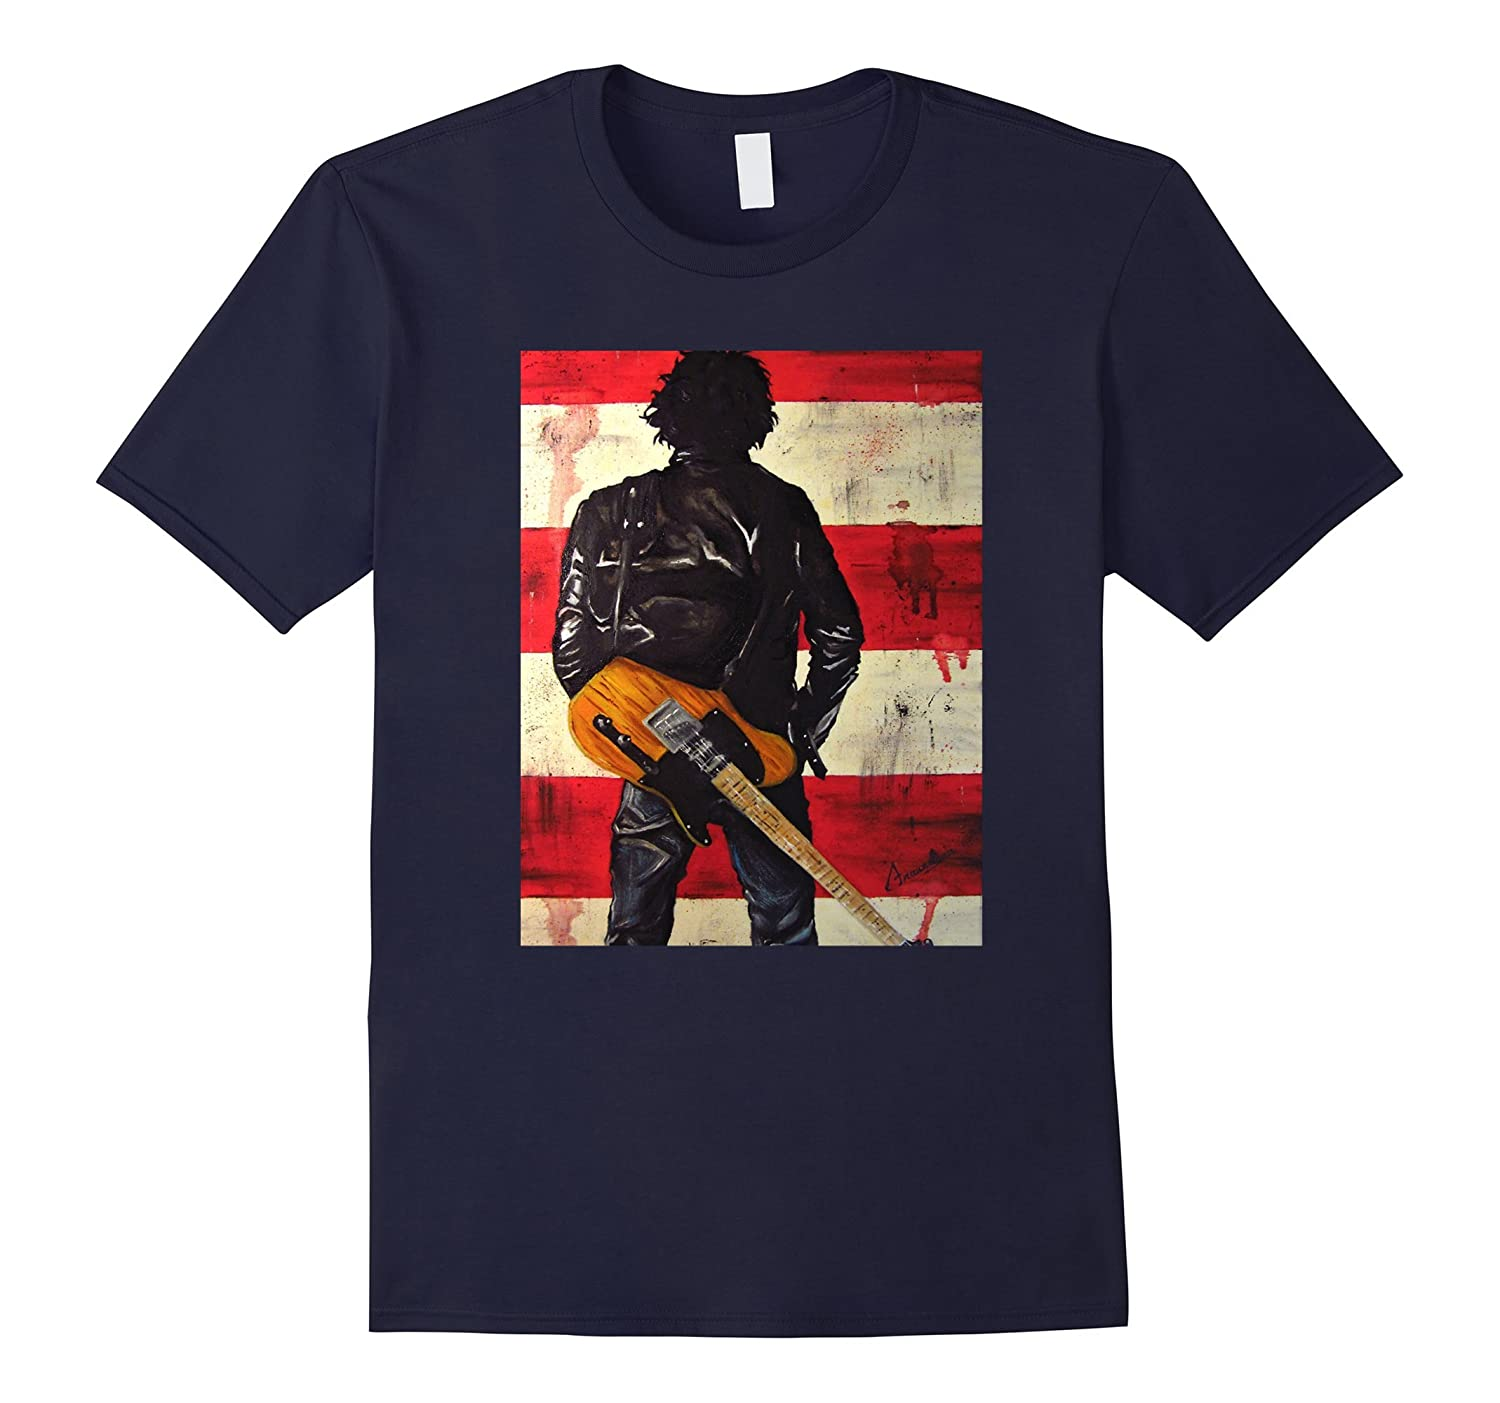 Bruces Springsteen Singer T-Shirt-BN